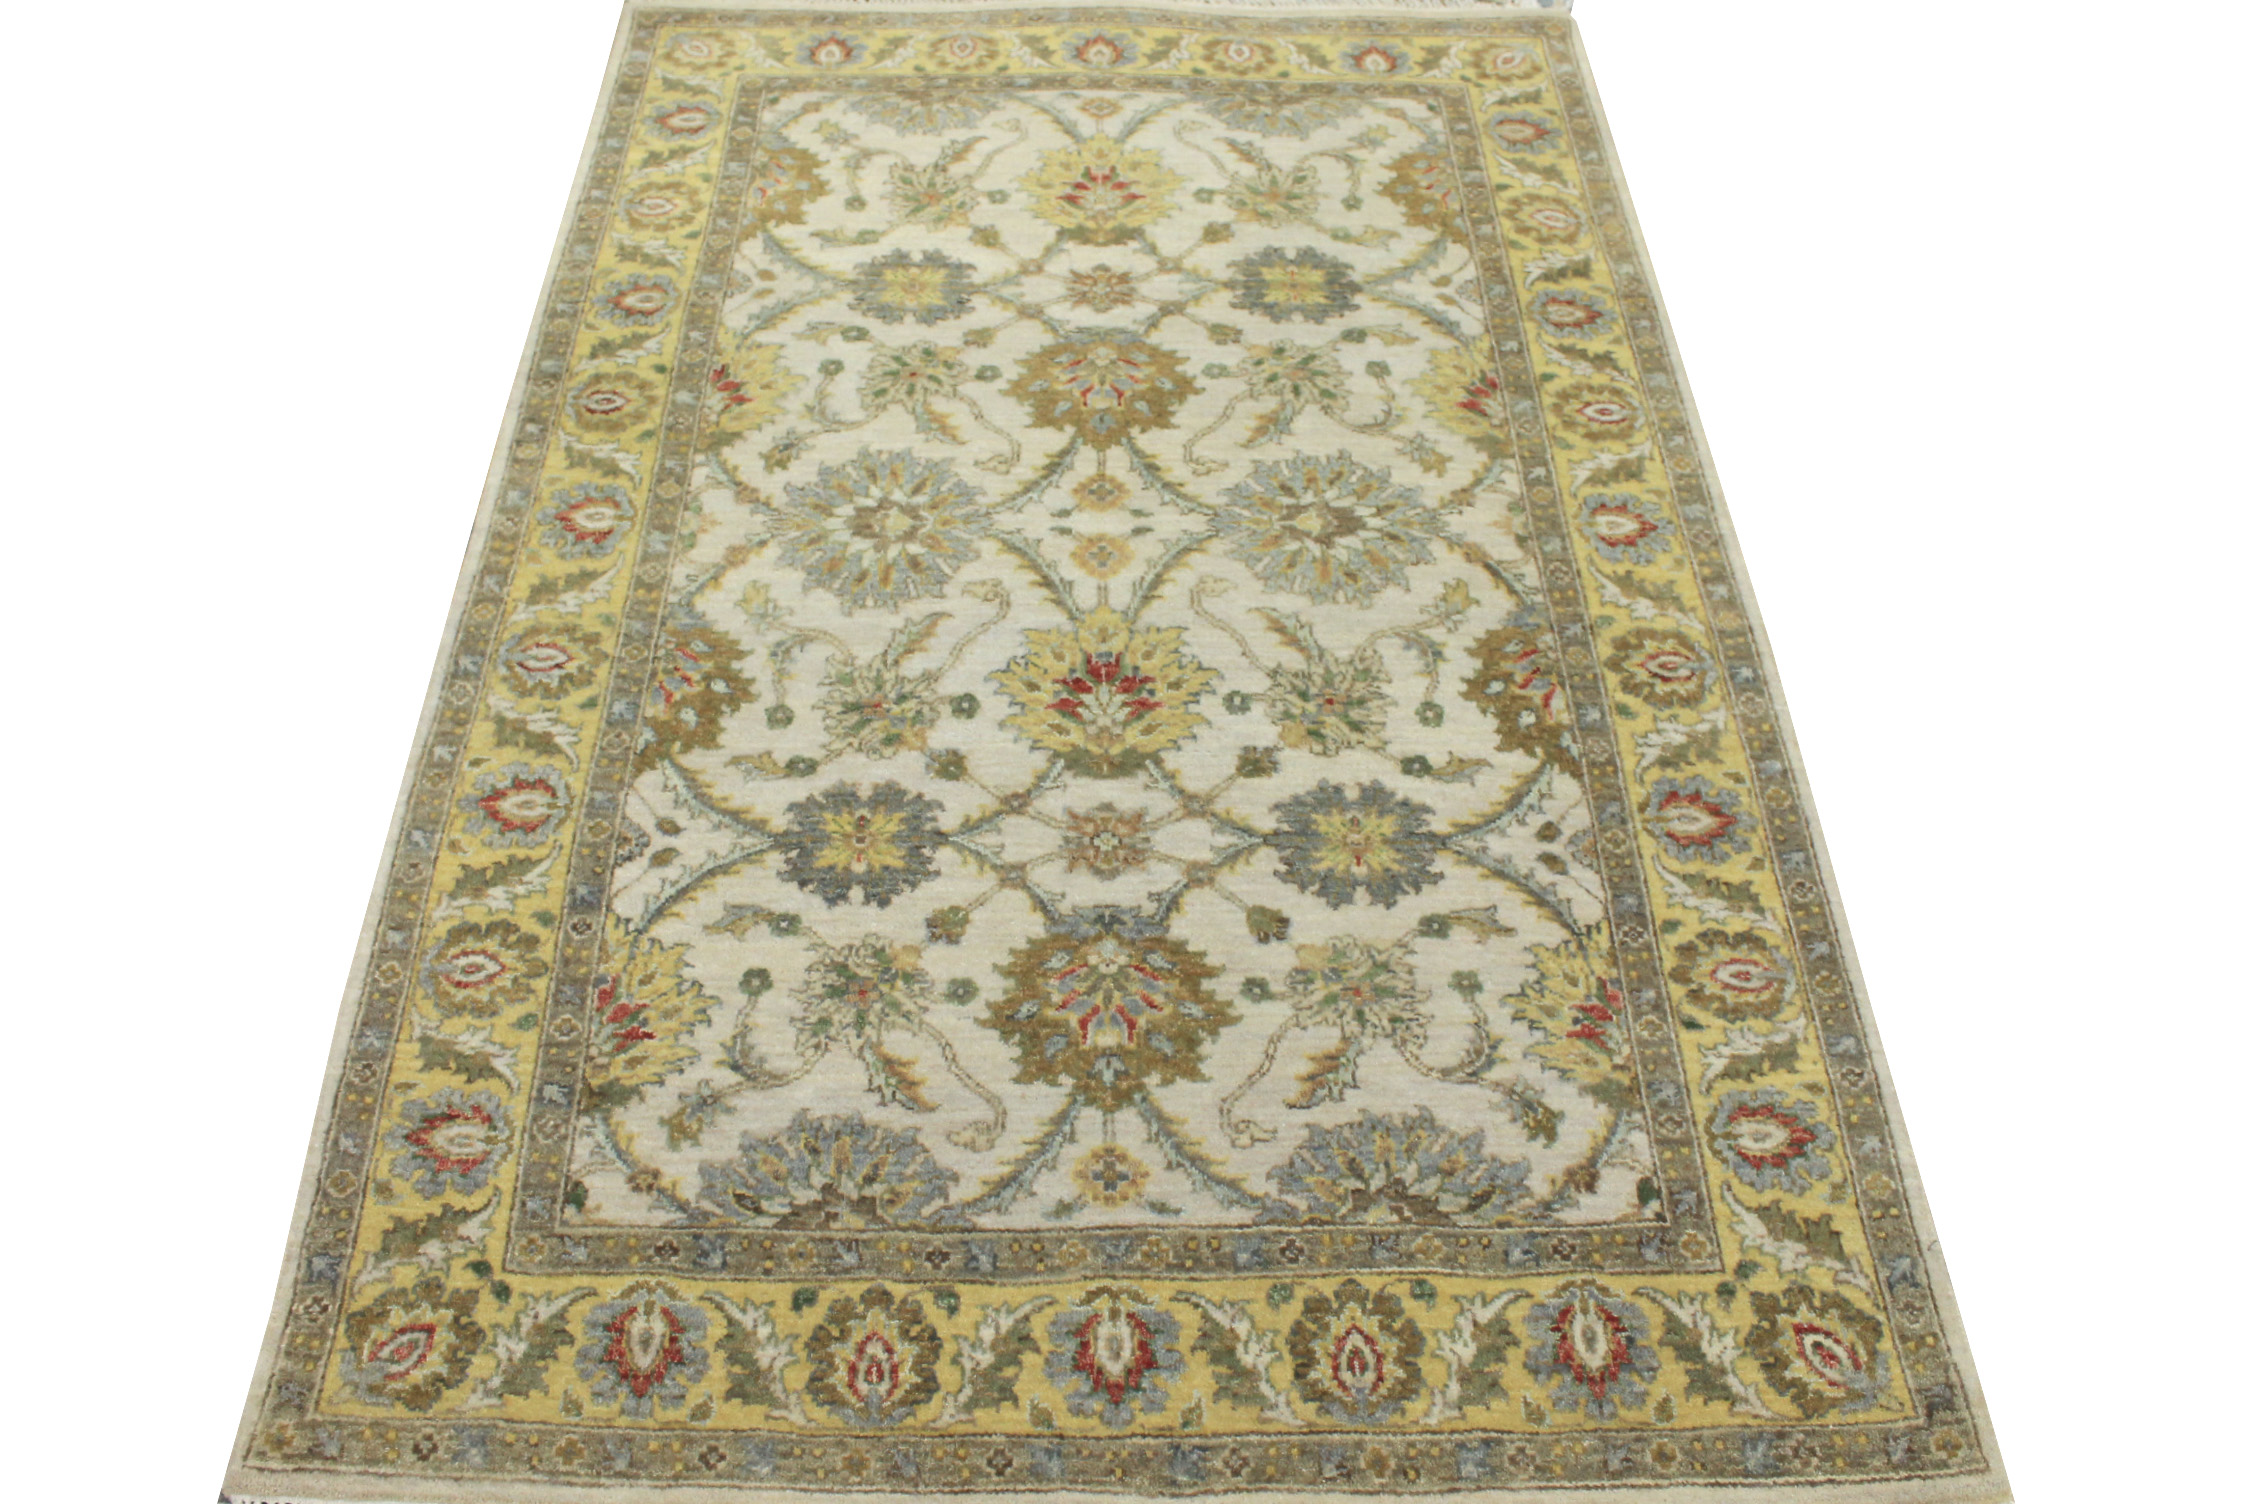 4x6 Traditional Hand Knotted Wool Area Rug - MR21127